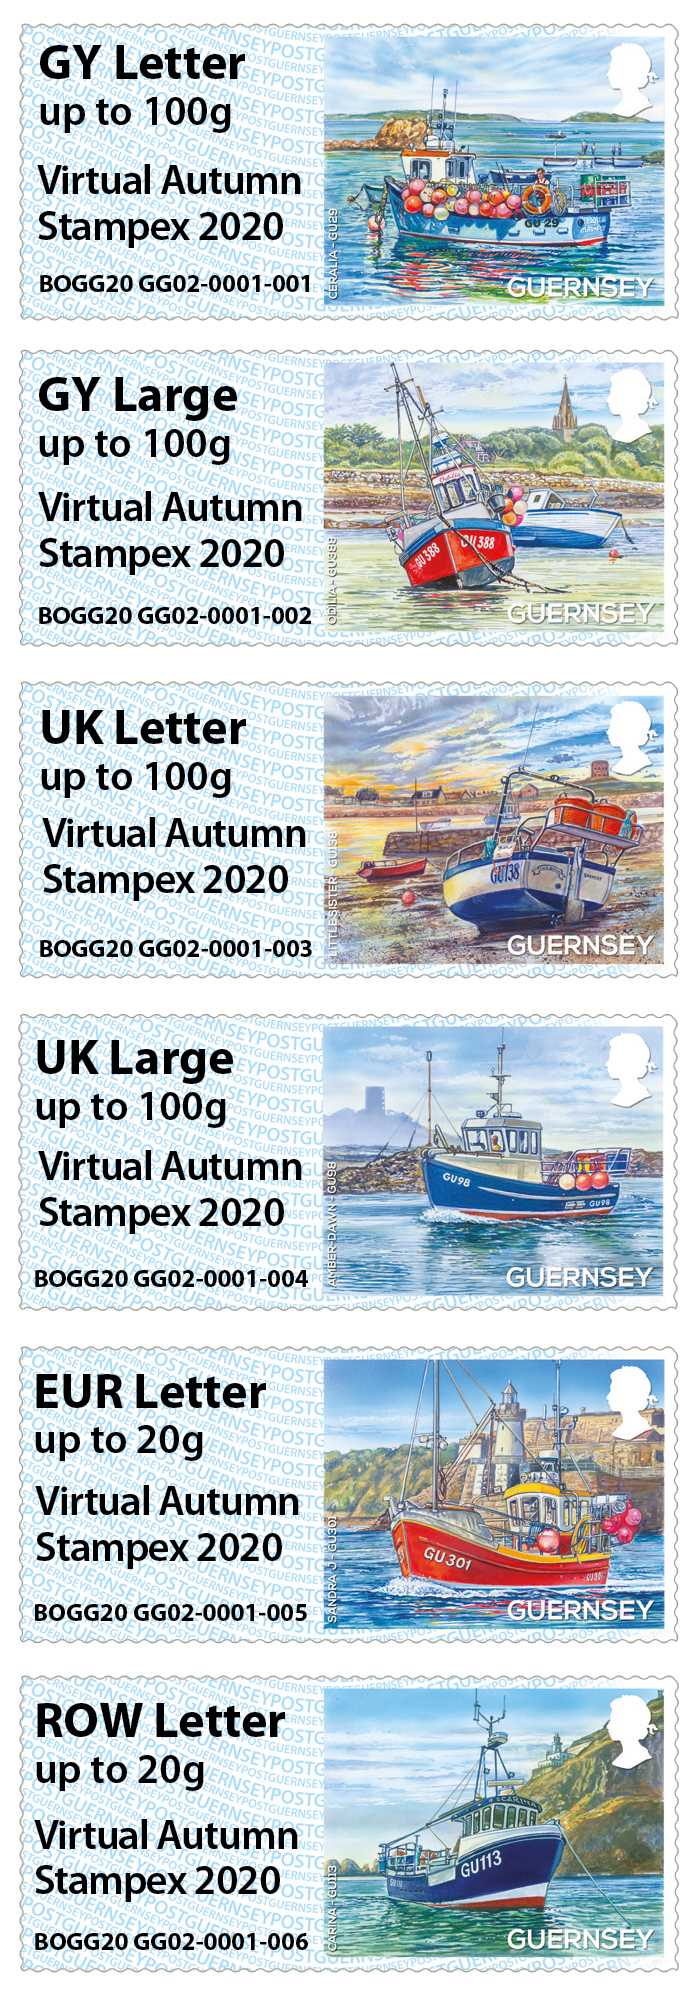 New Post and Go overprint for Virtual Stampex